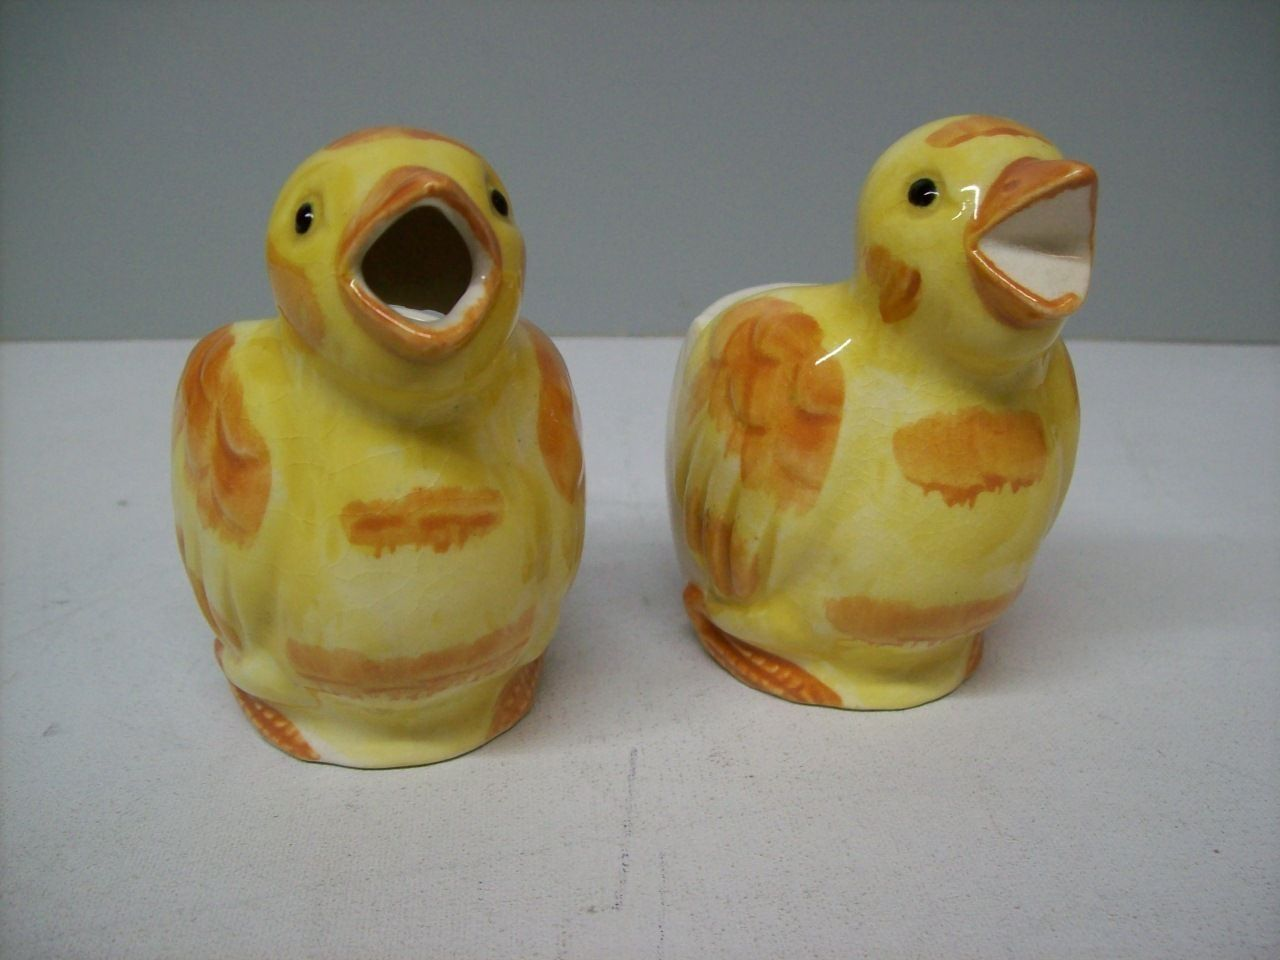 Cream & Sugar Yellow Chicks Vintage Country Kitchen Ceramic Dispensers $24.50 Home goods to Fashion http://www.islandheat.com for Great Gift Idea's